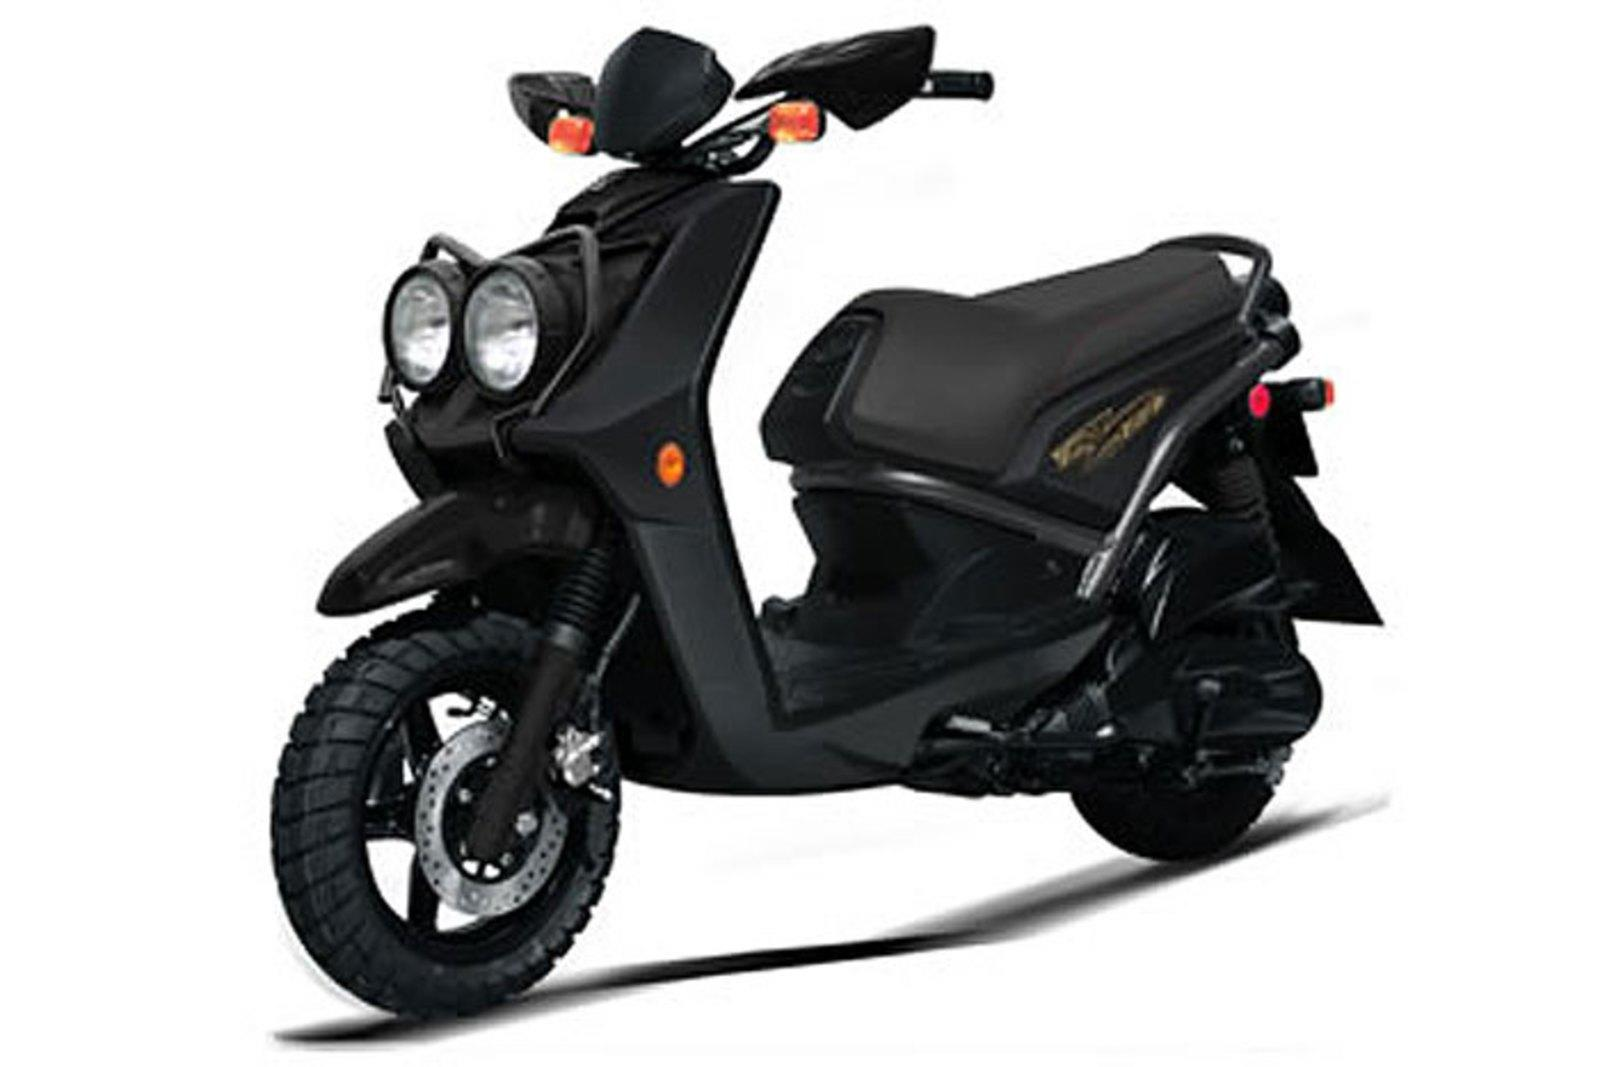 2013 yamaha bws 125 review top speed. Black Bedroom Furniture Sets. Home Design Ideas